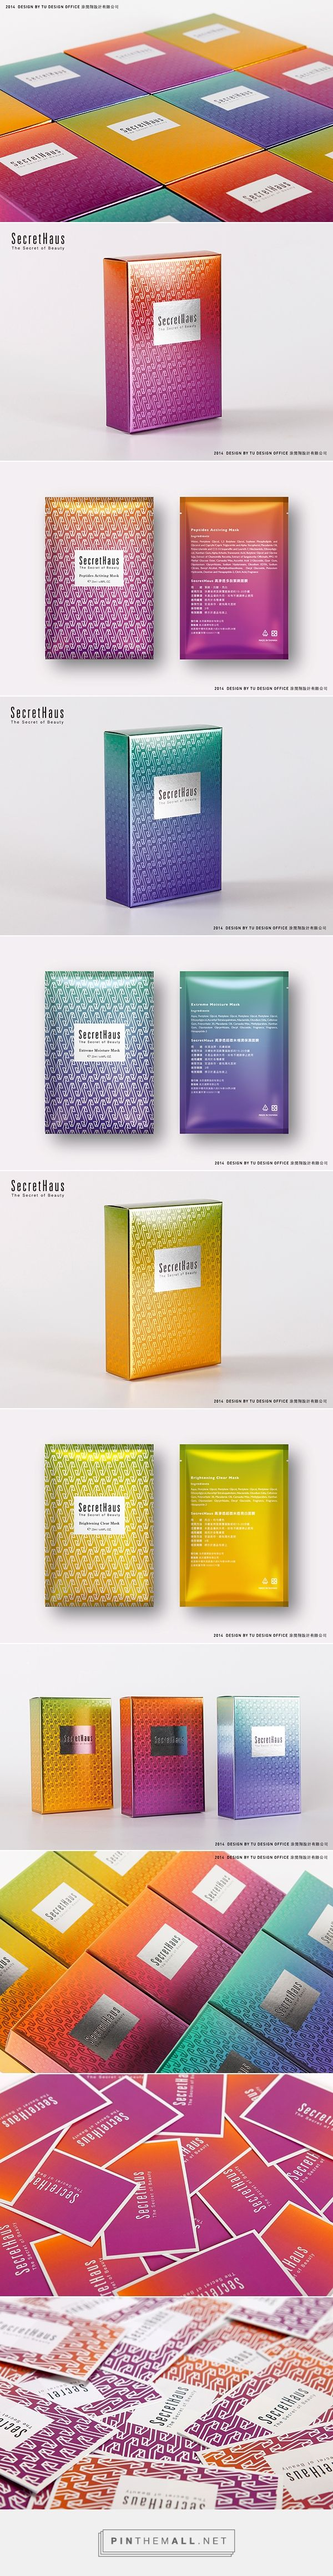 SecretHaus |cosmetic brand | face care